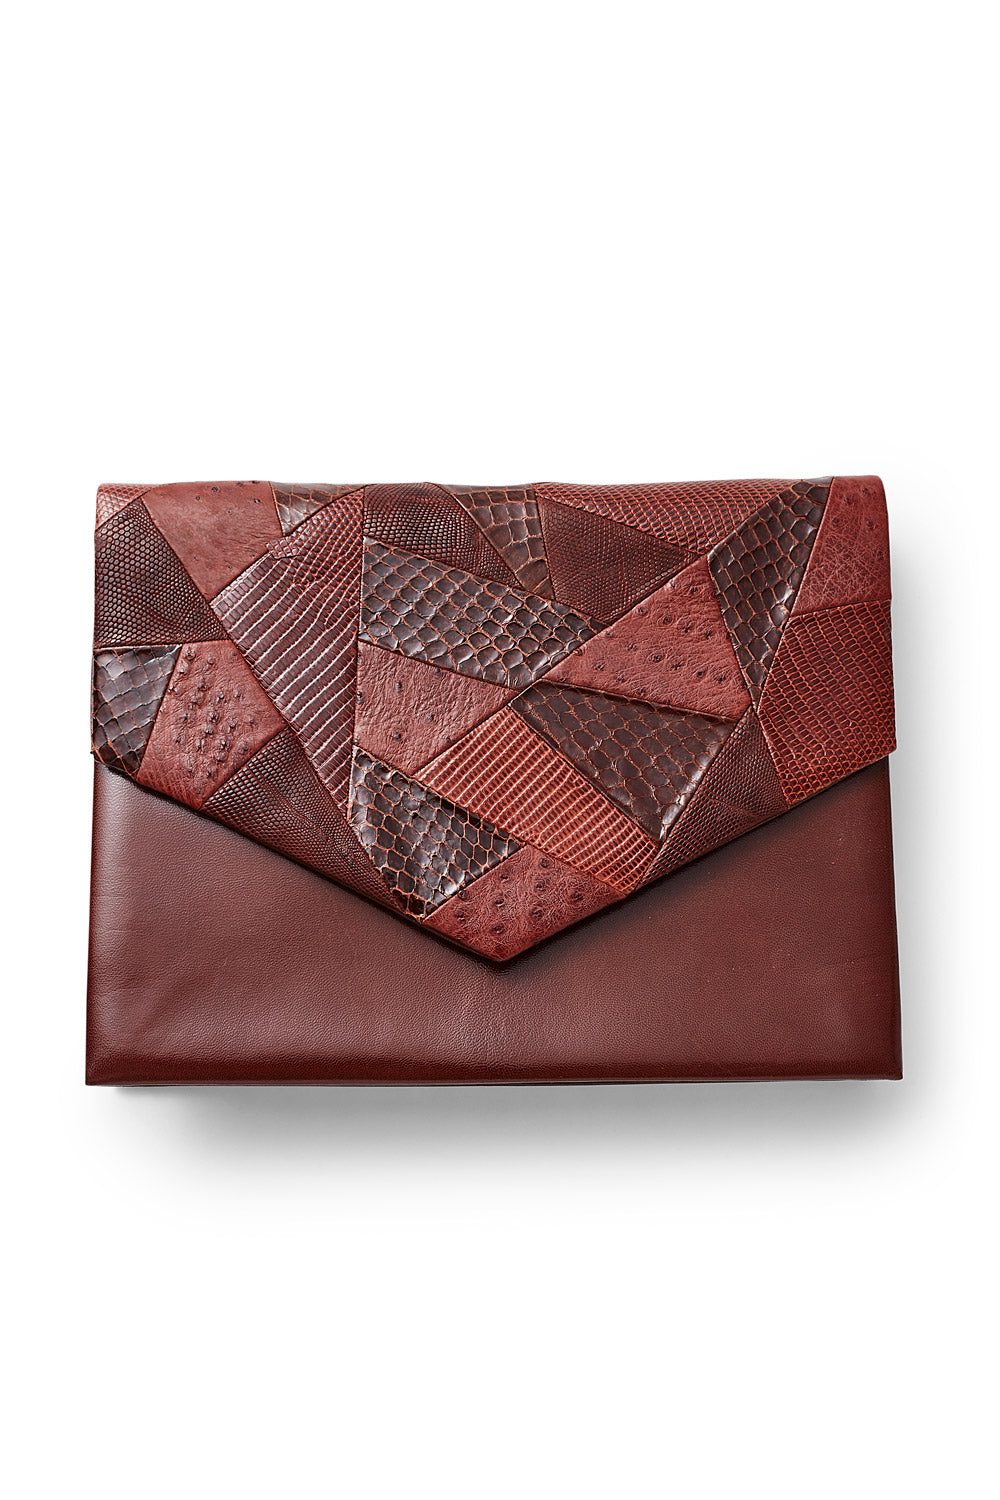 Andrea Pfister <br> 1970's/80's burgundy snakeskin & leather patchwork clutch purse